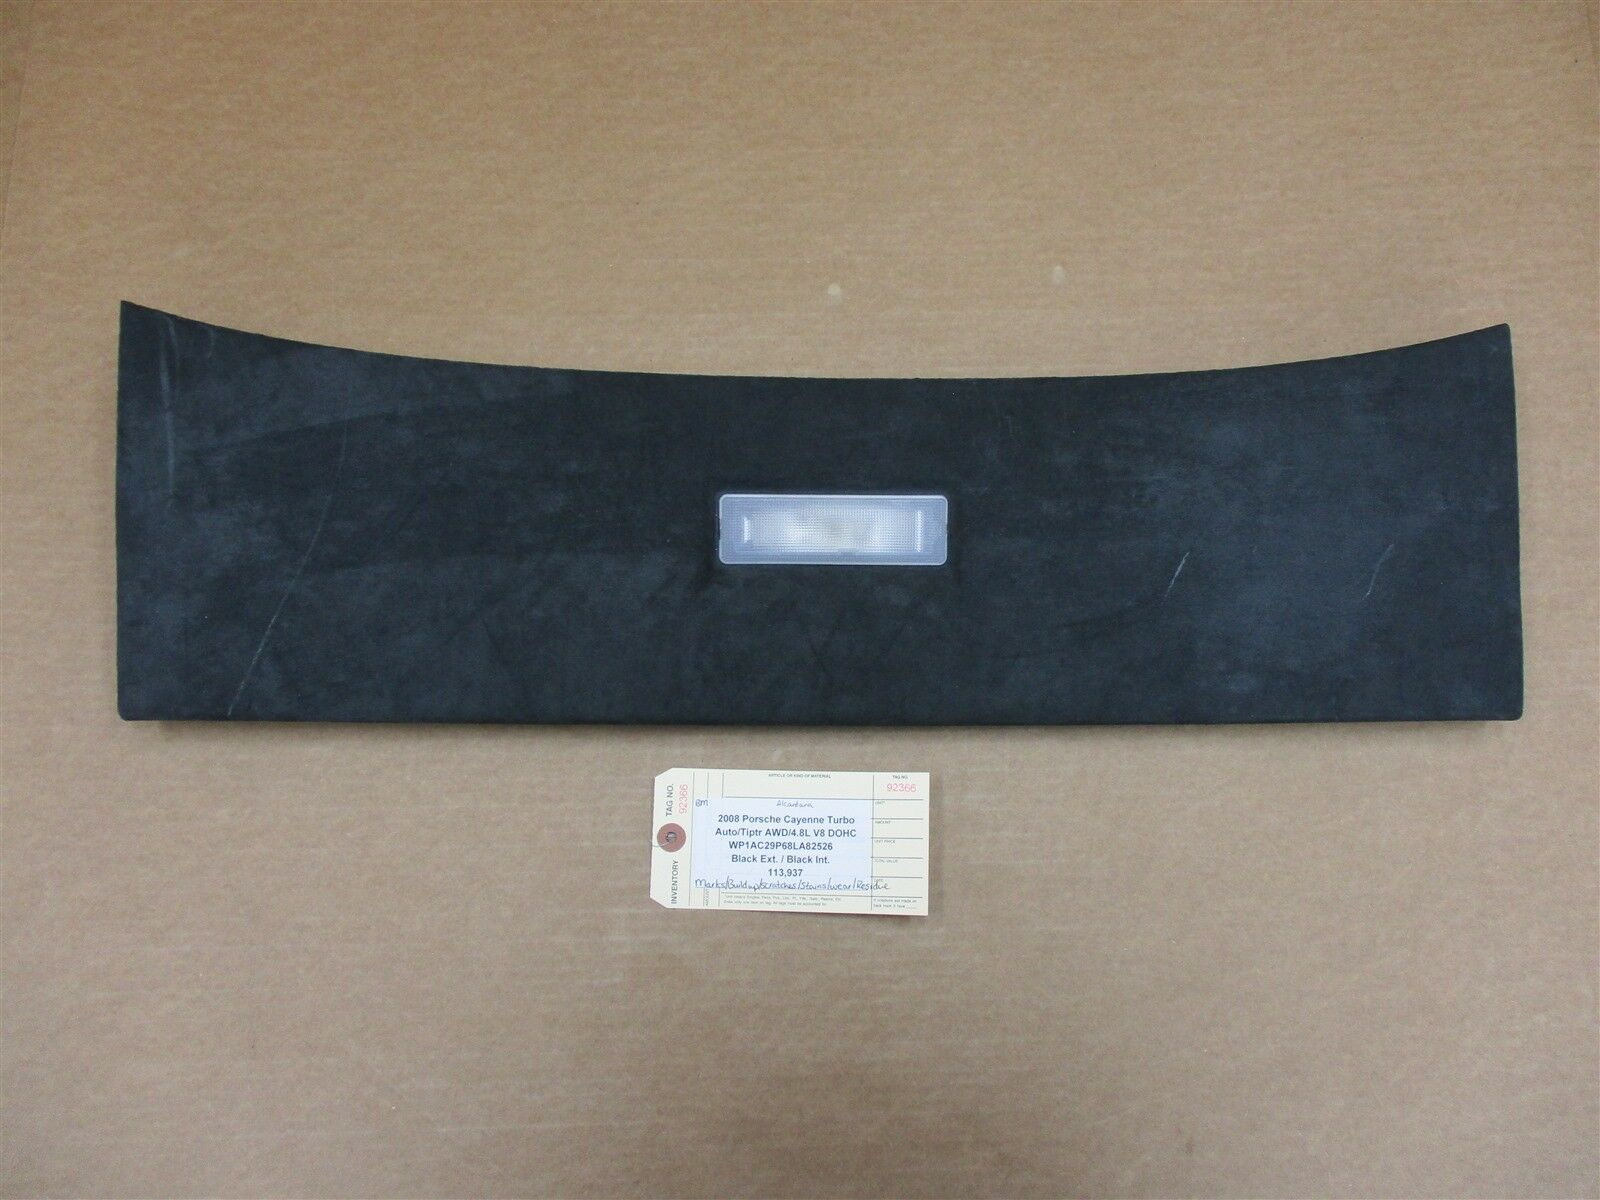 08 Cayenne Turbo Porsche 957 REAR ALCANTARA BOOT PANEL TRIM 7L5867617 113,937